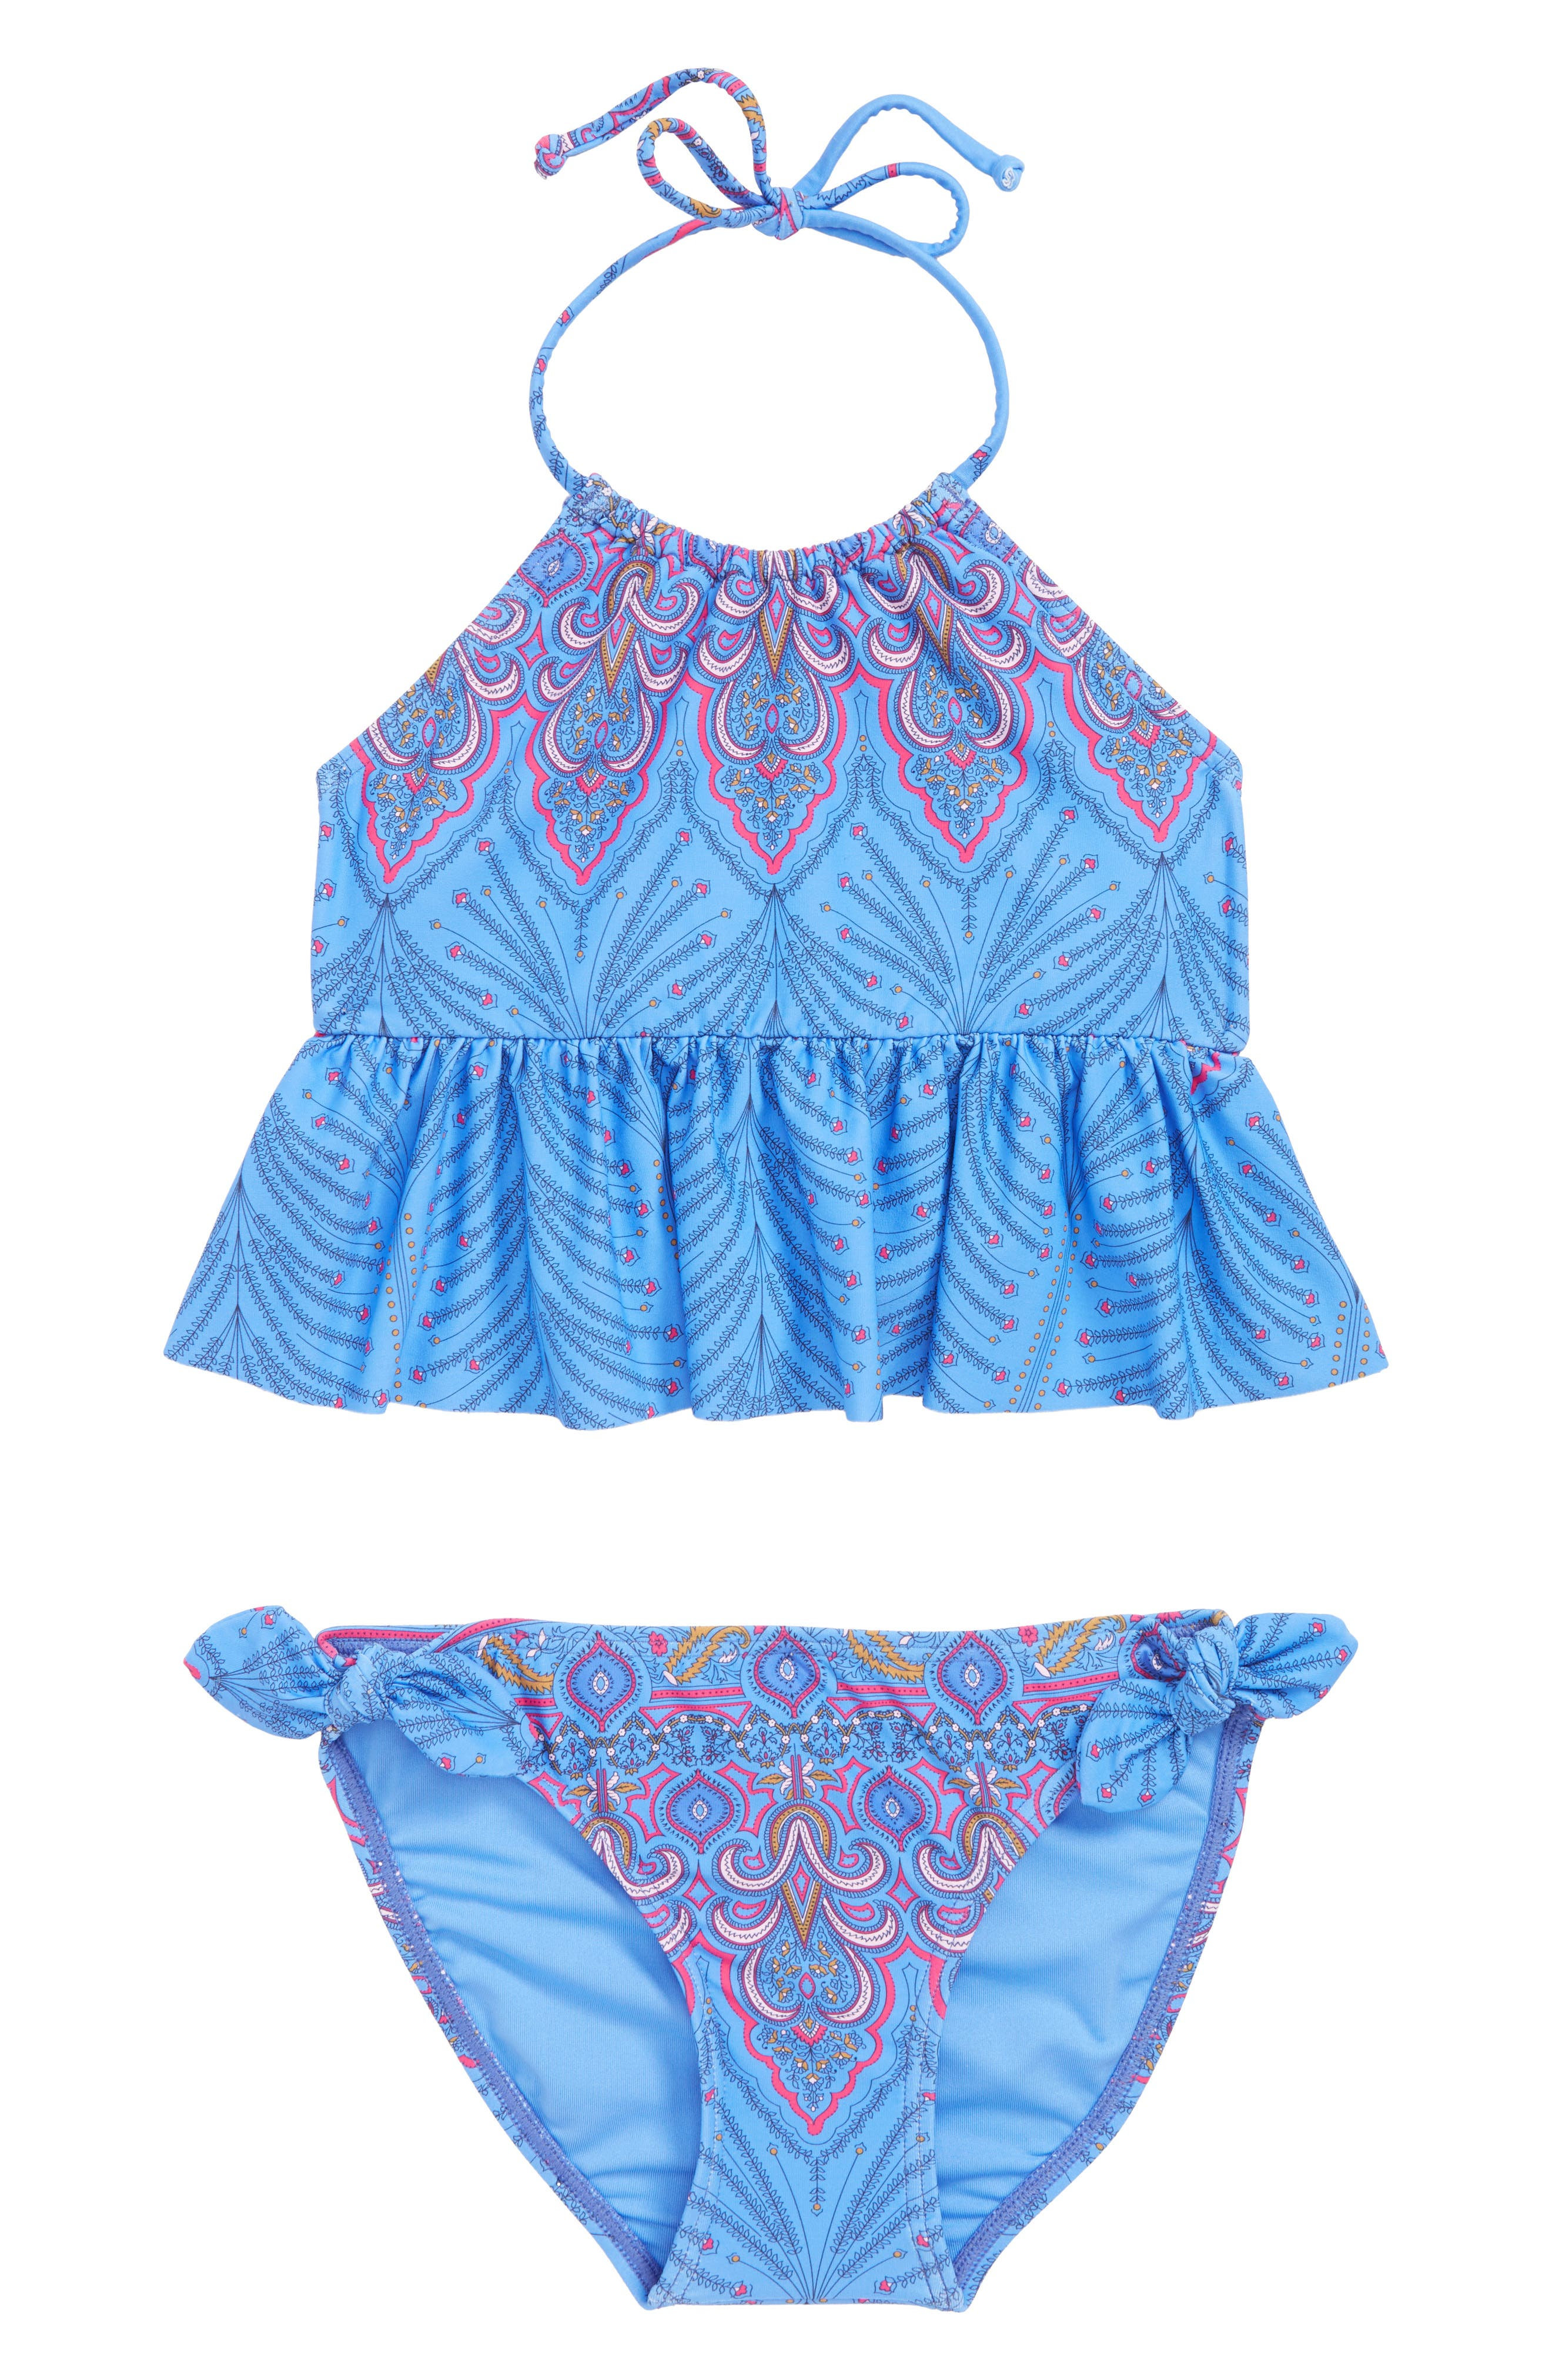 Evie Tankini Two-Piece Swimsuit,                         Main,                         color, 435